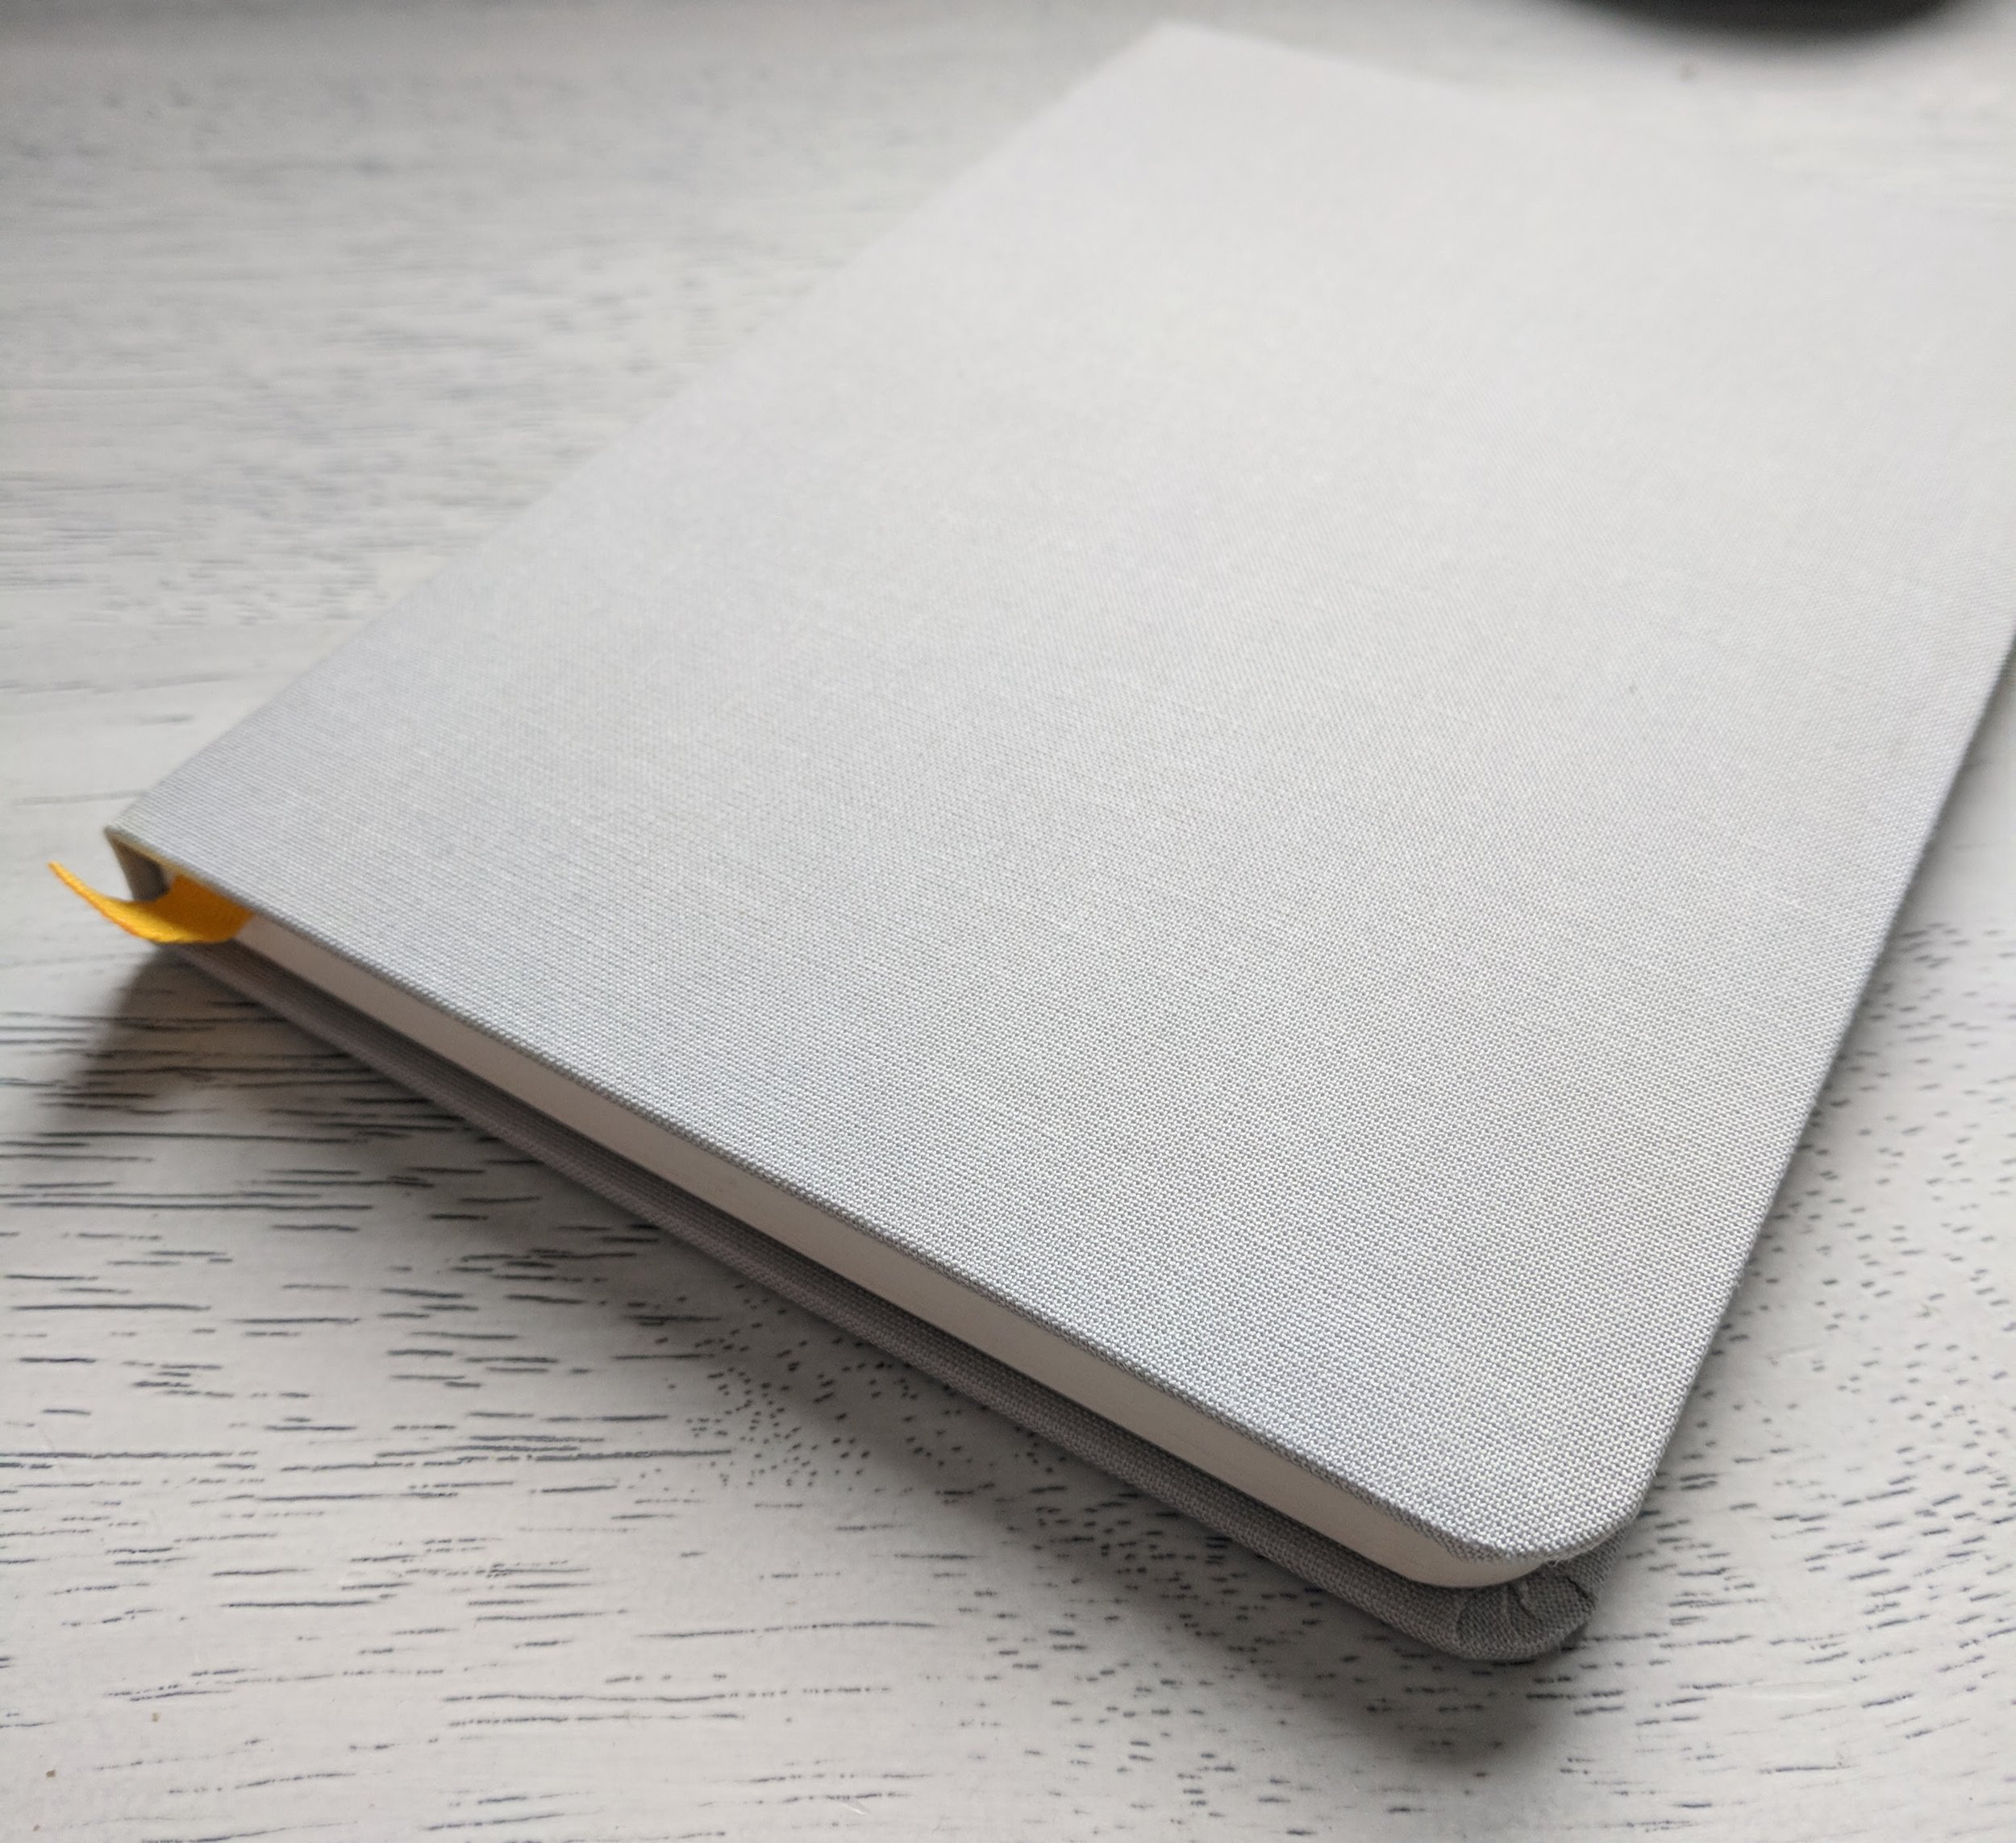 Baron Fig Confidant Notebook Review Cover Shot.jpg